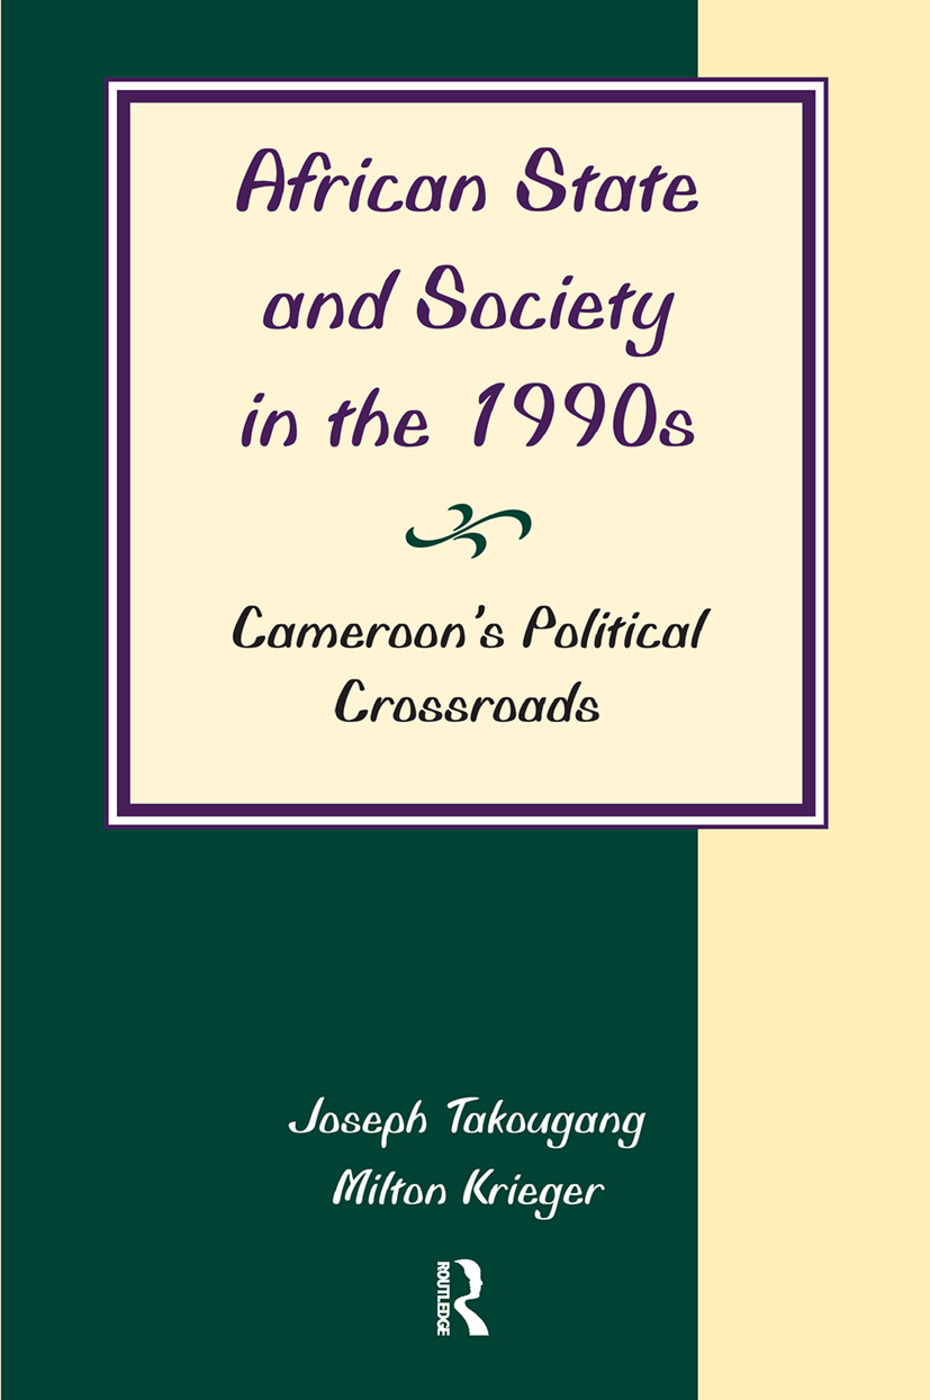 African State And Society In The 1990s: Cameroon's Political Crossroads book cover